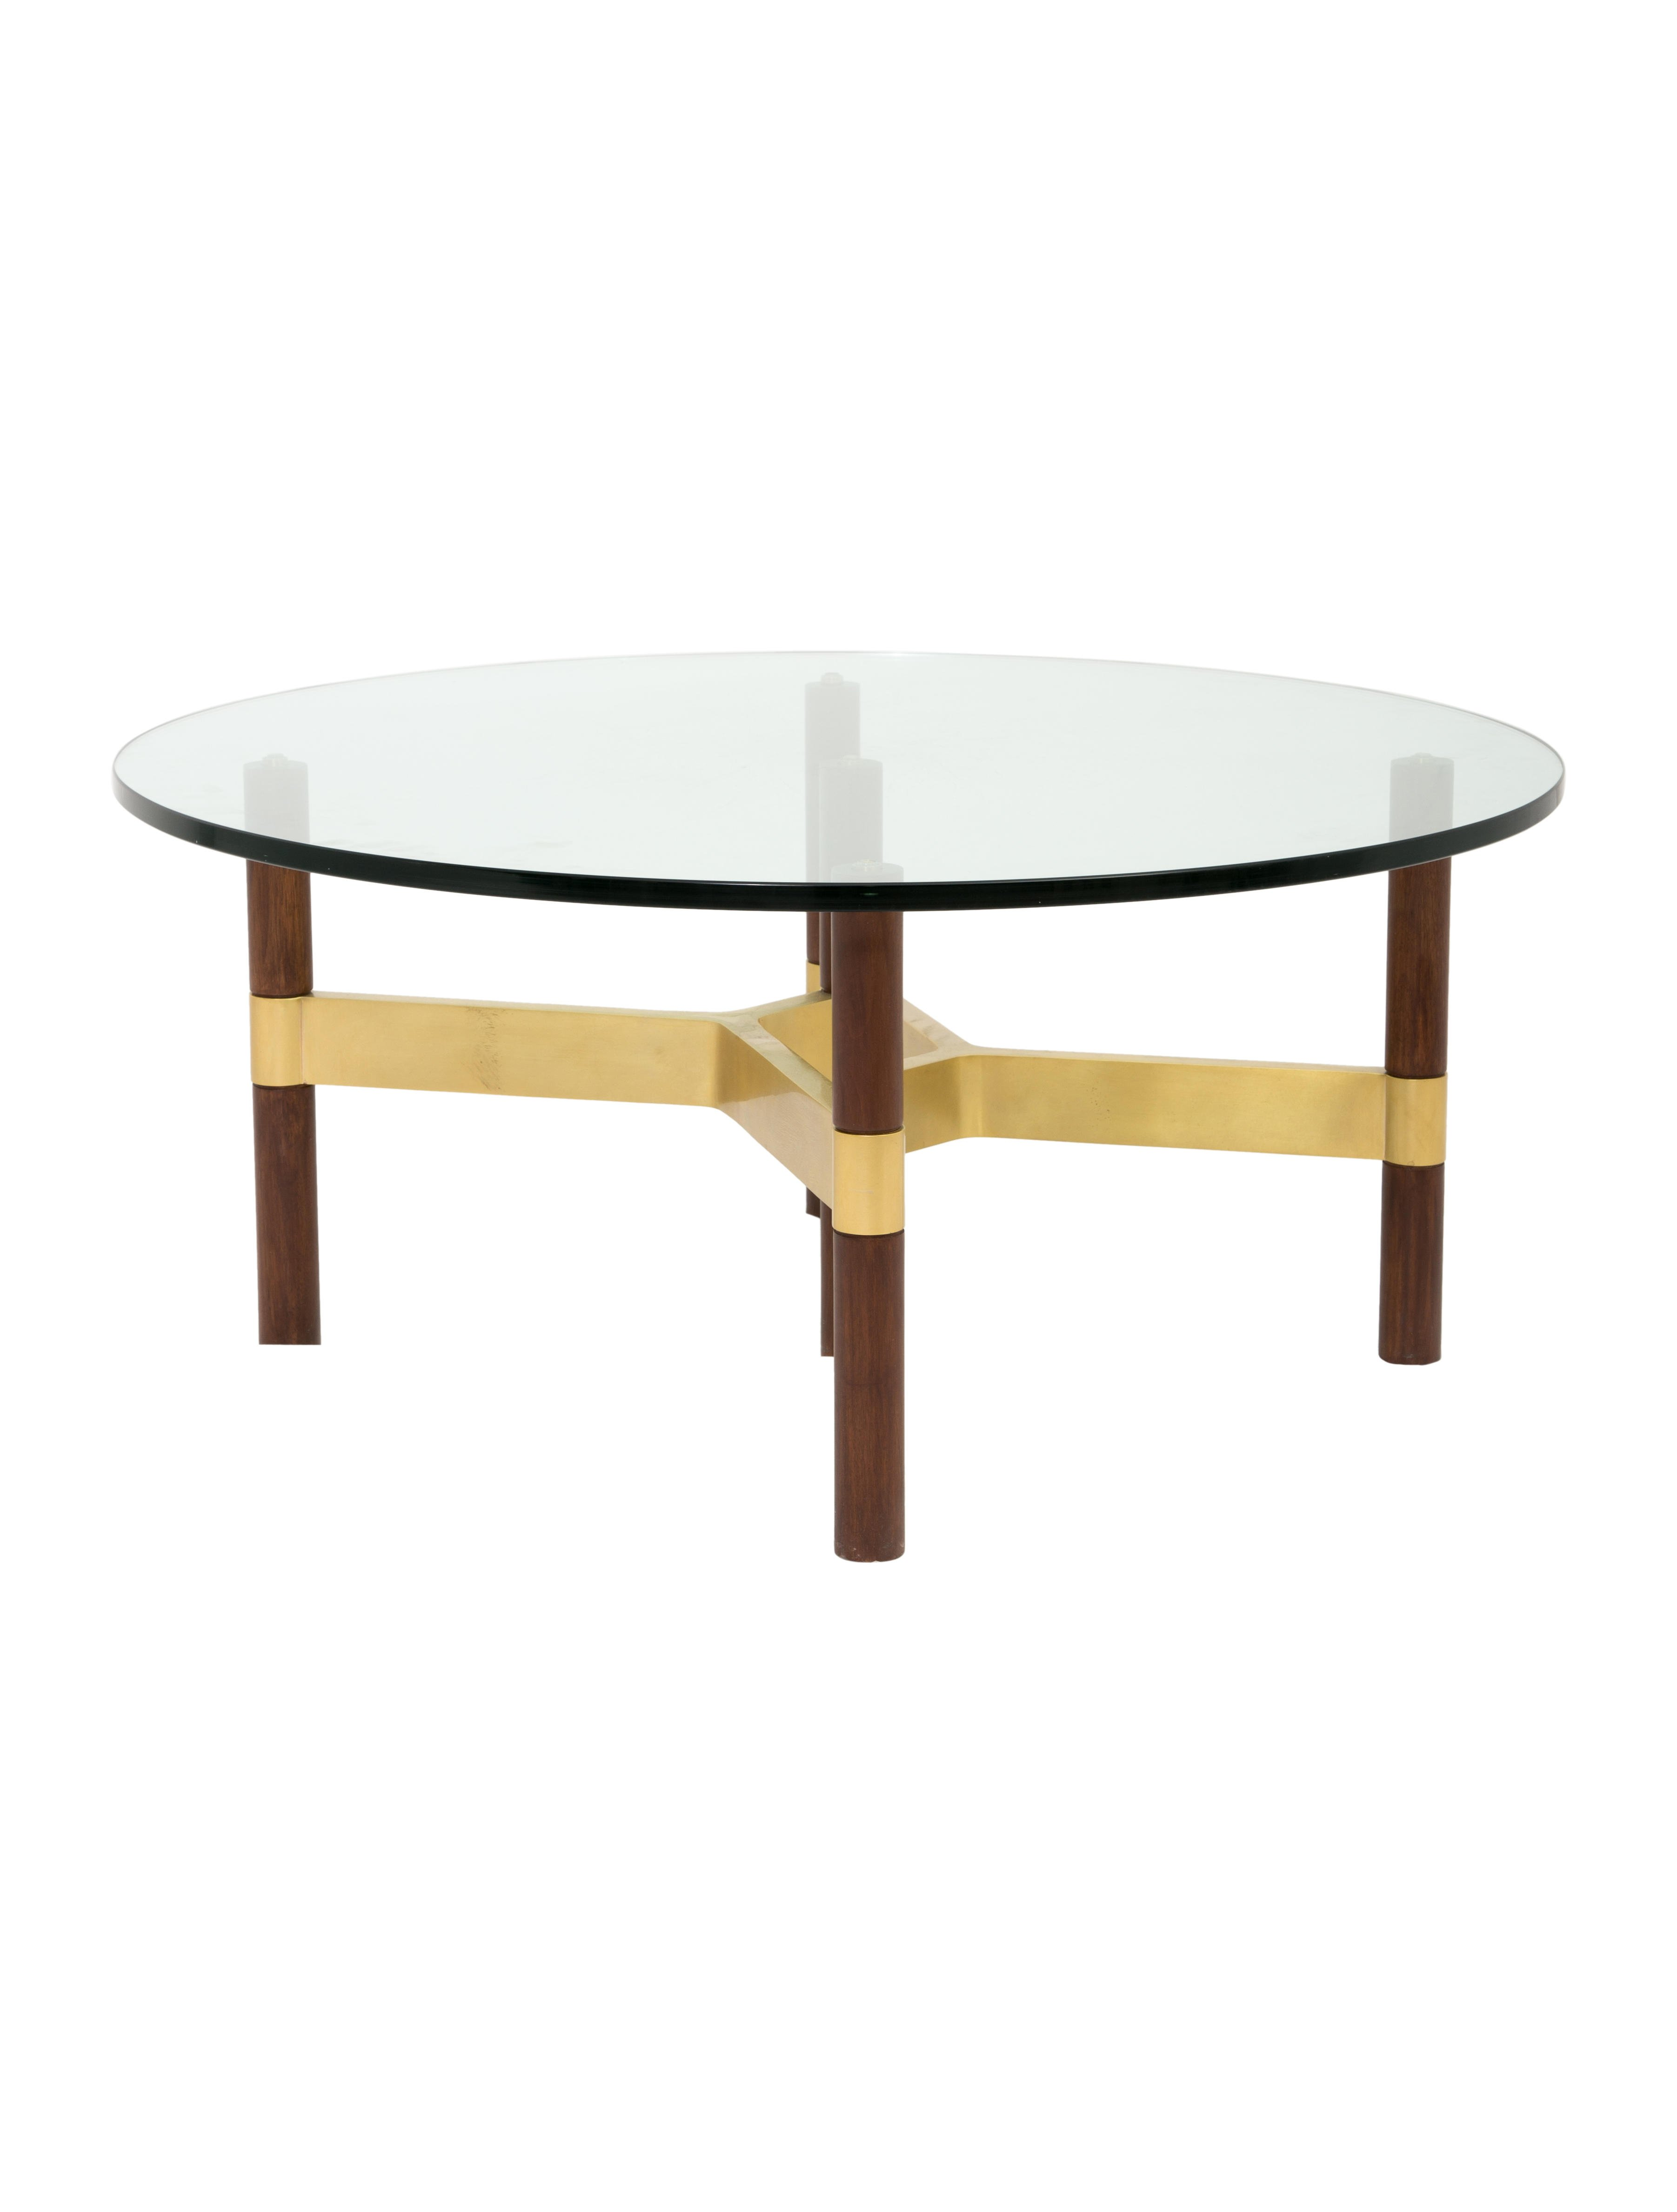 coffee table design within reach photo - 1